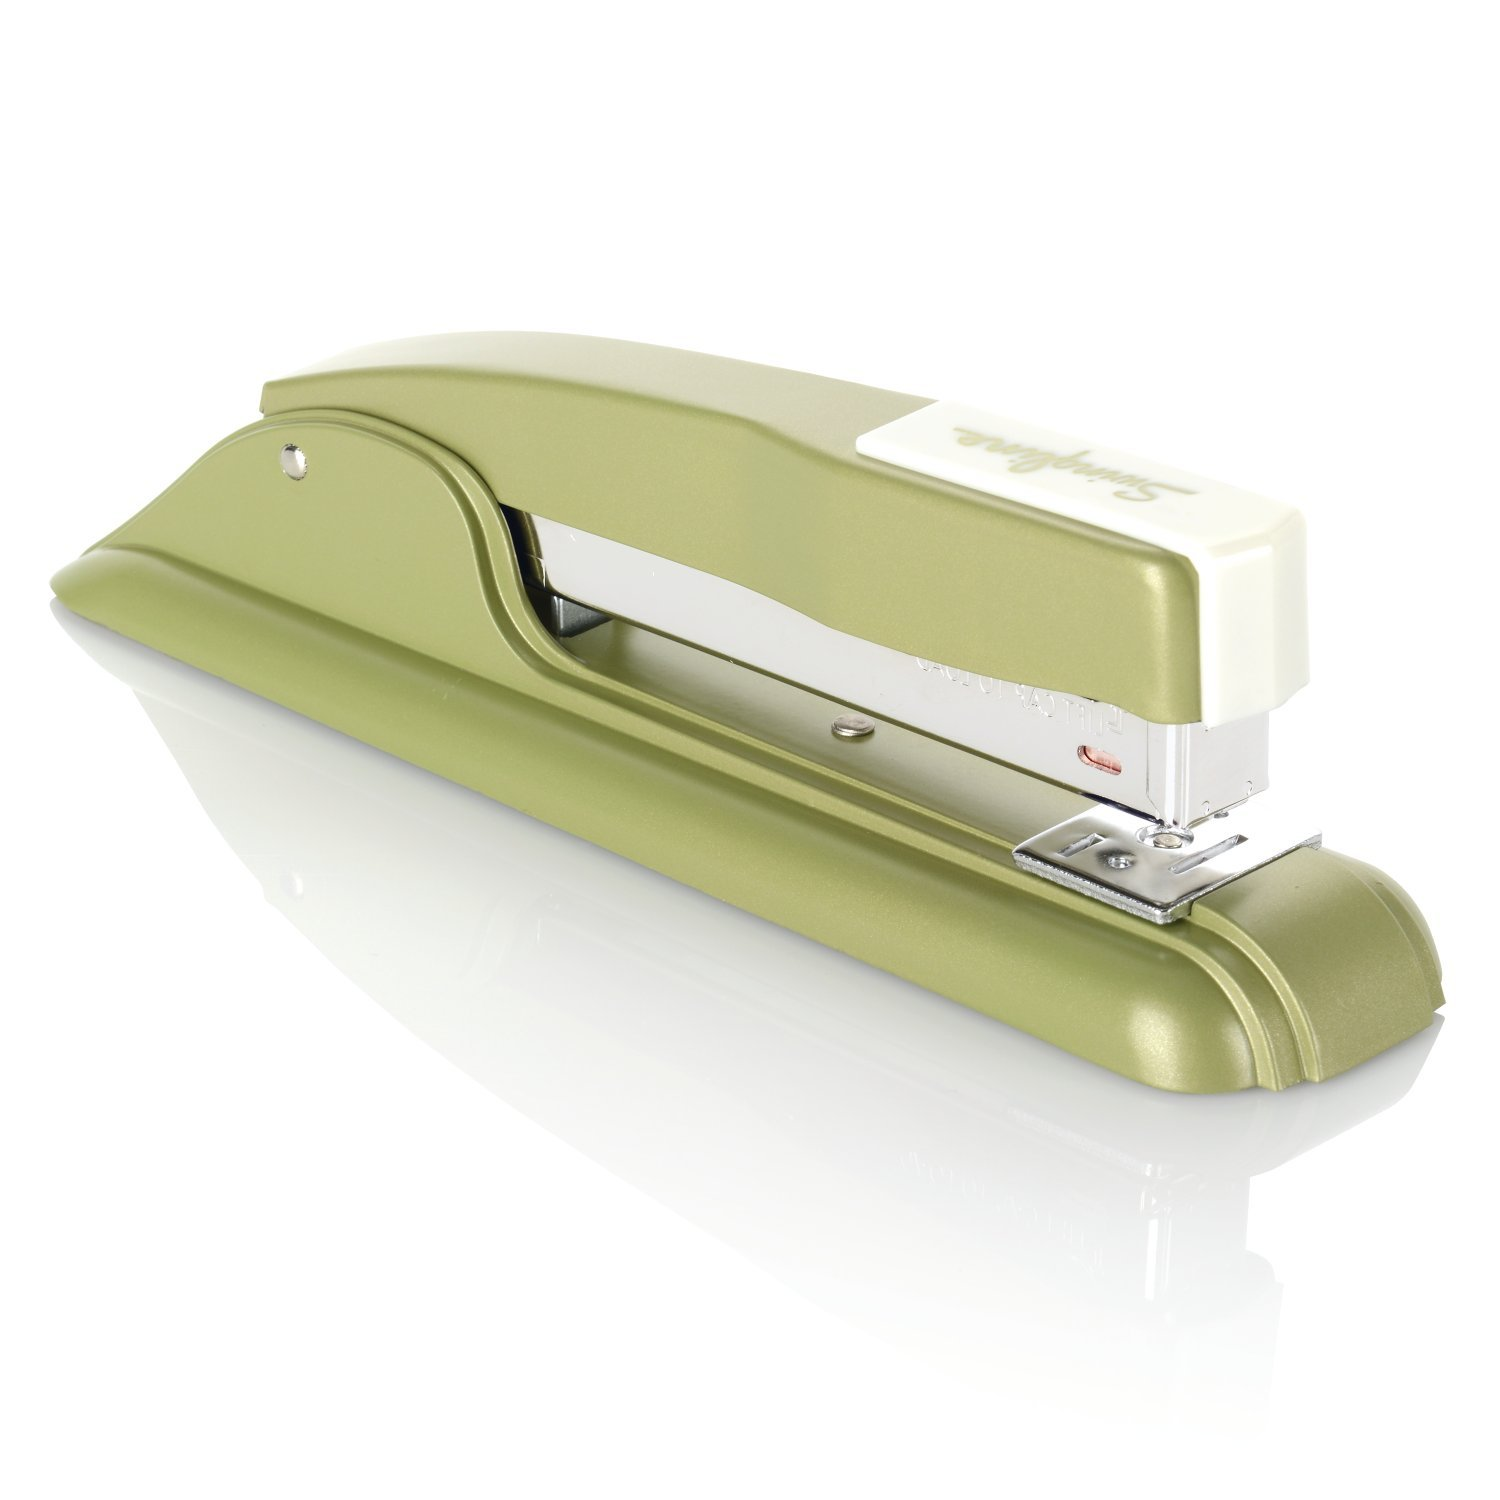 Swingline Stapler, Retro